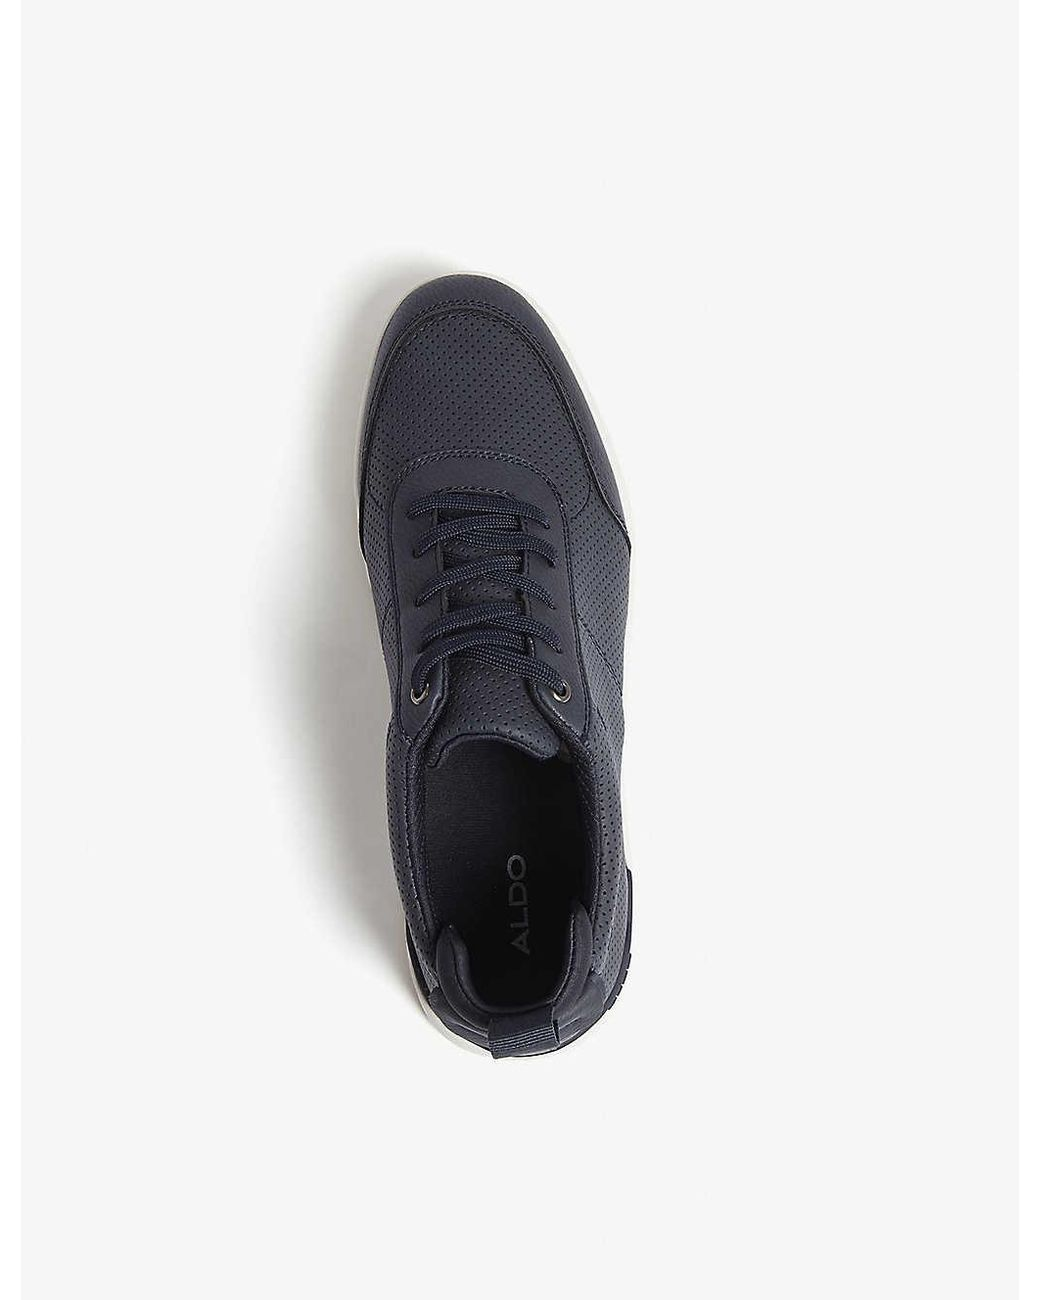 ALDO Lace Dobyn Perforated Trainers in